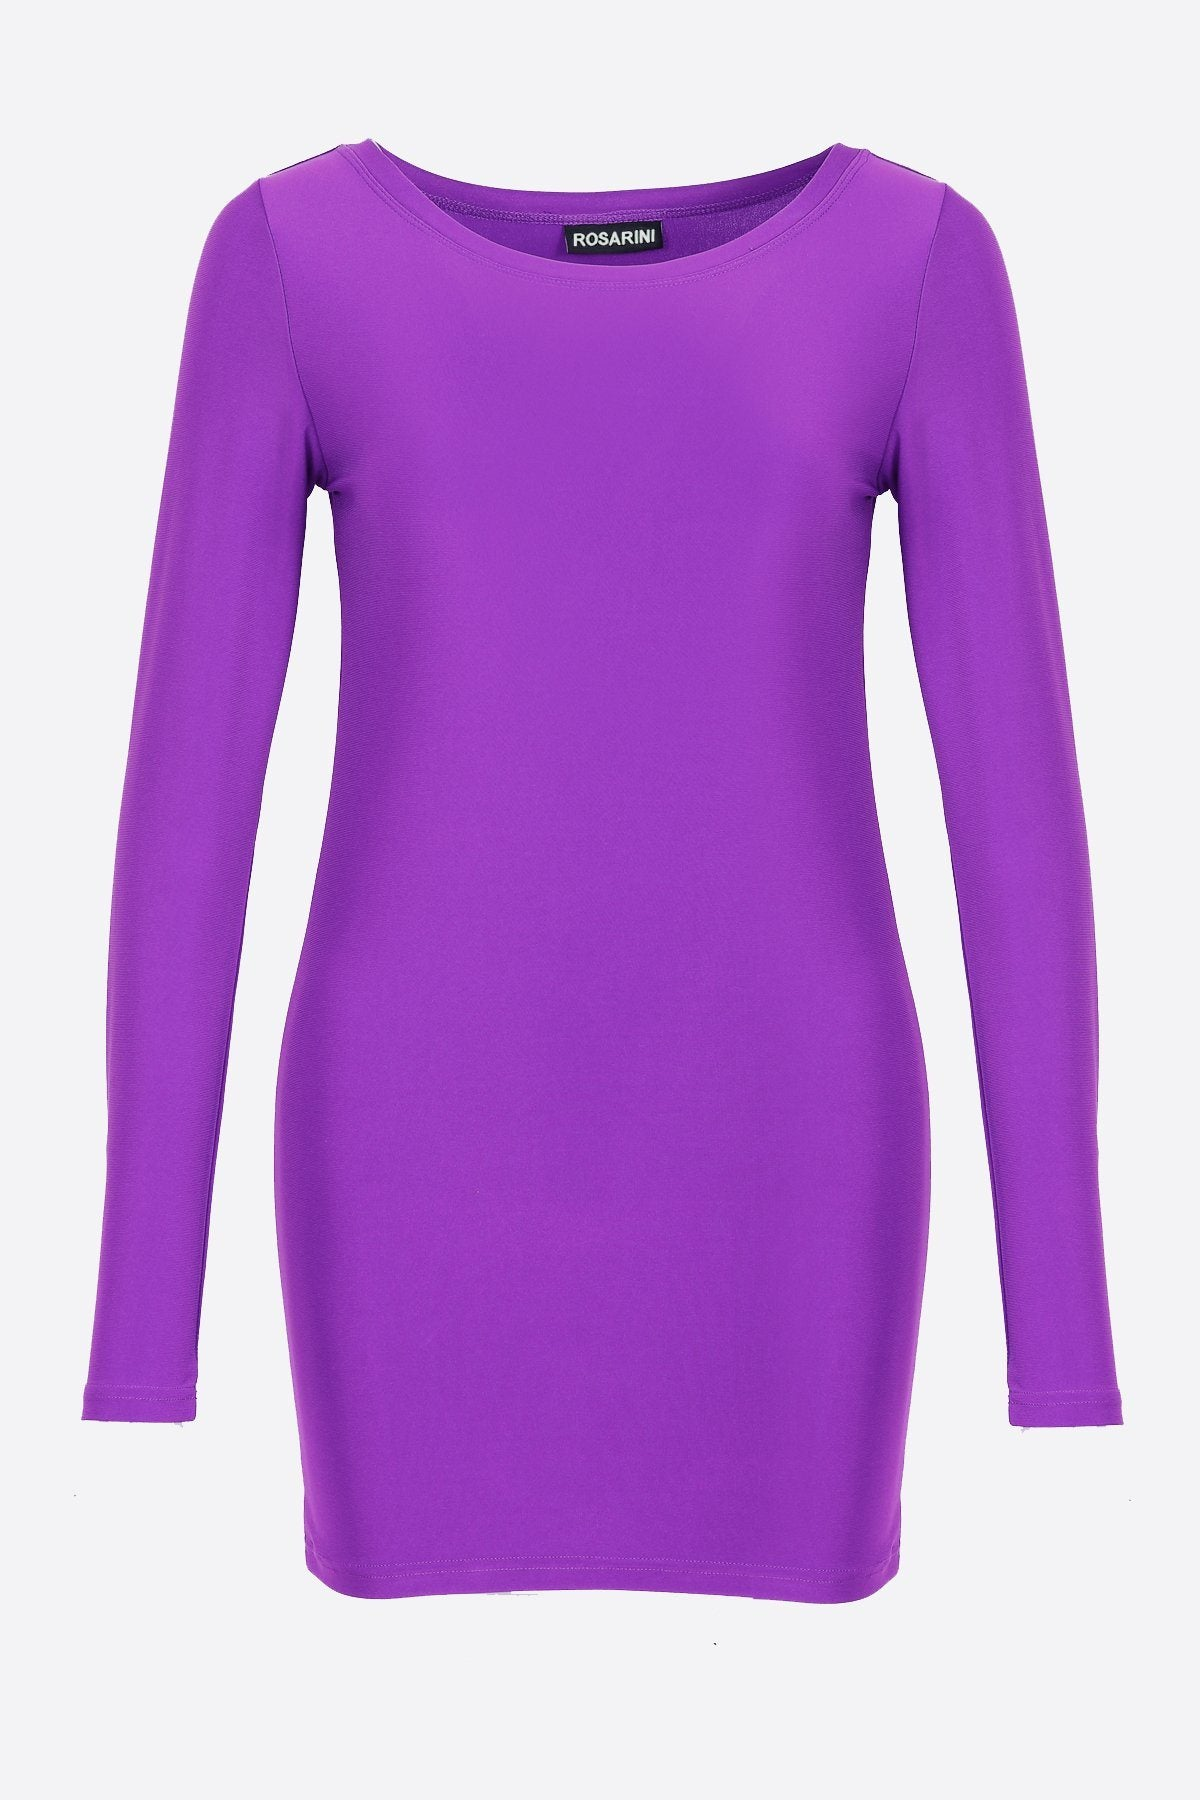 Women's Long Sleeve Crew Neck Top Bright Purple Rosarini